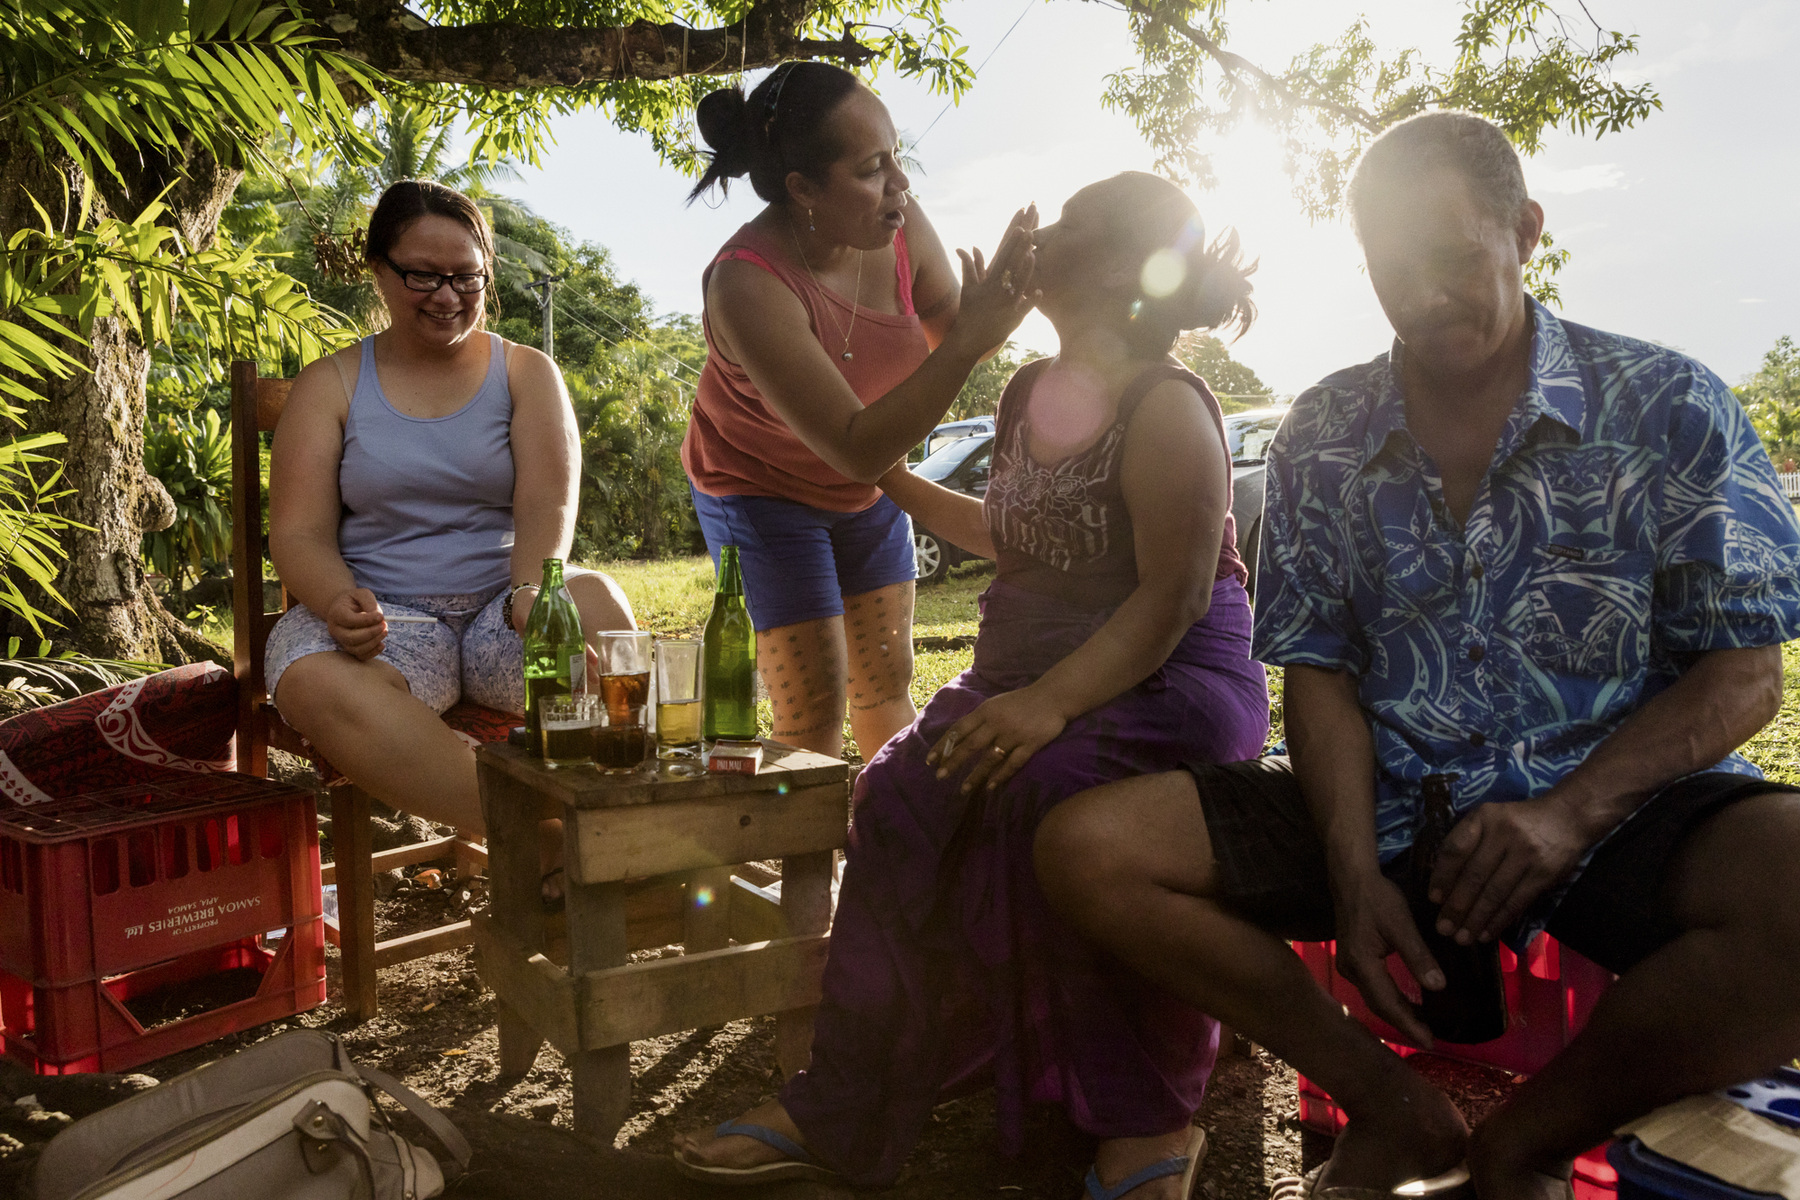 "Adrienne Surprenant - 23/12/2018, Apia, Samoa—""If 80% of people in Samoa had dengue once, it is that 80% of us like to drink beer outside,"" says a woman during her brother's 50th birthday, as a man lights a coil next to the party. All the family is reunited for the occasion, even the brothers and sisters living abroad in Australia or New Zealand. Their garden is filled with empty coconut shells and other mosquito breeding spots."